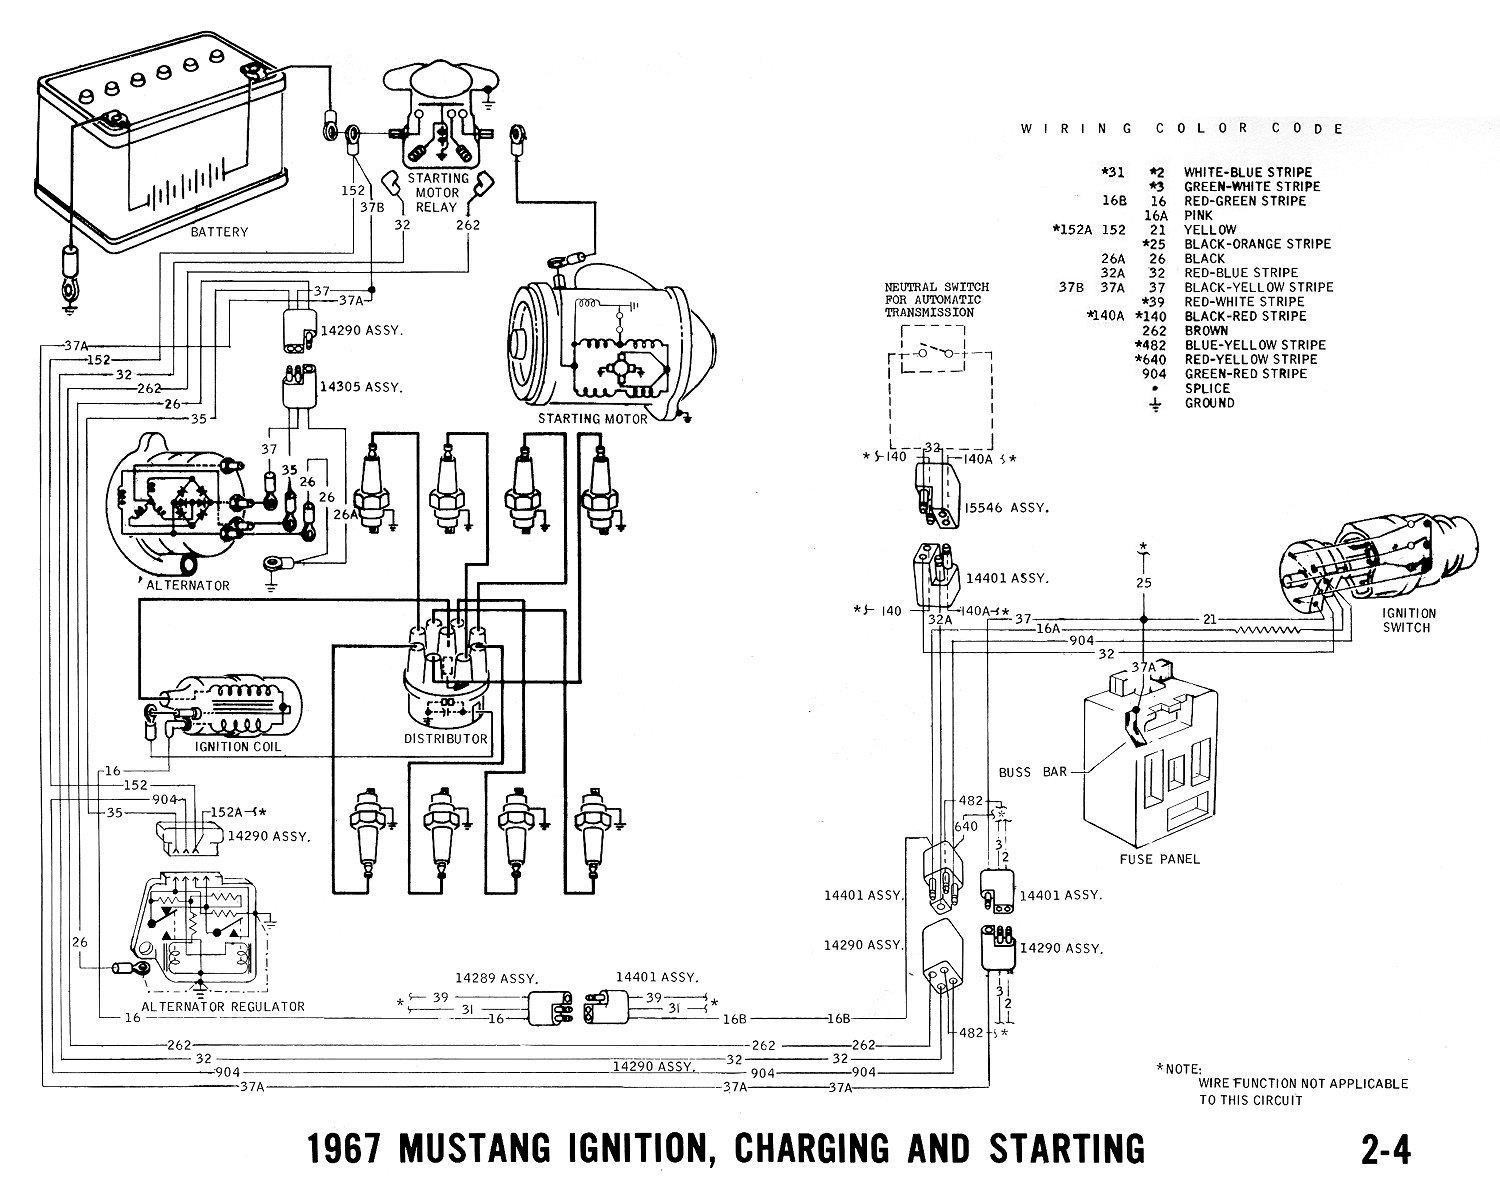 1967 ford ignition switch wiring diagram lzk gallery wire center u2022 rh daniablub co Ford Electronic Ignition Wiring 1968 ford ignition switch wiring diagram